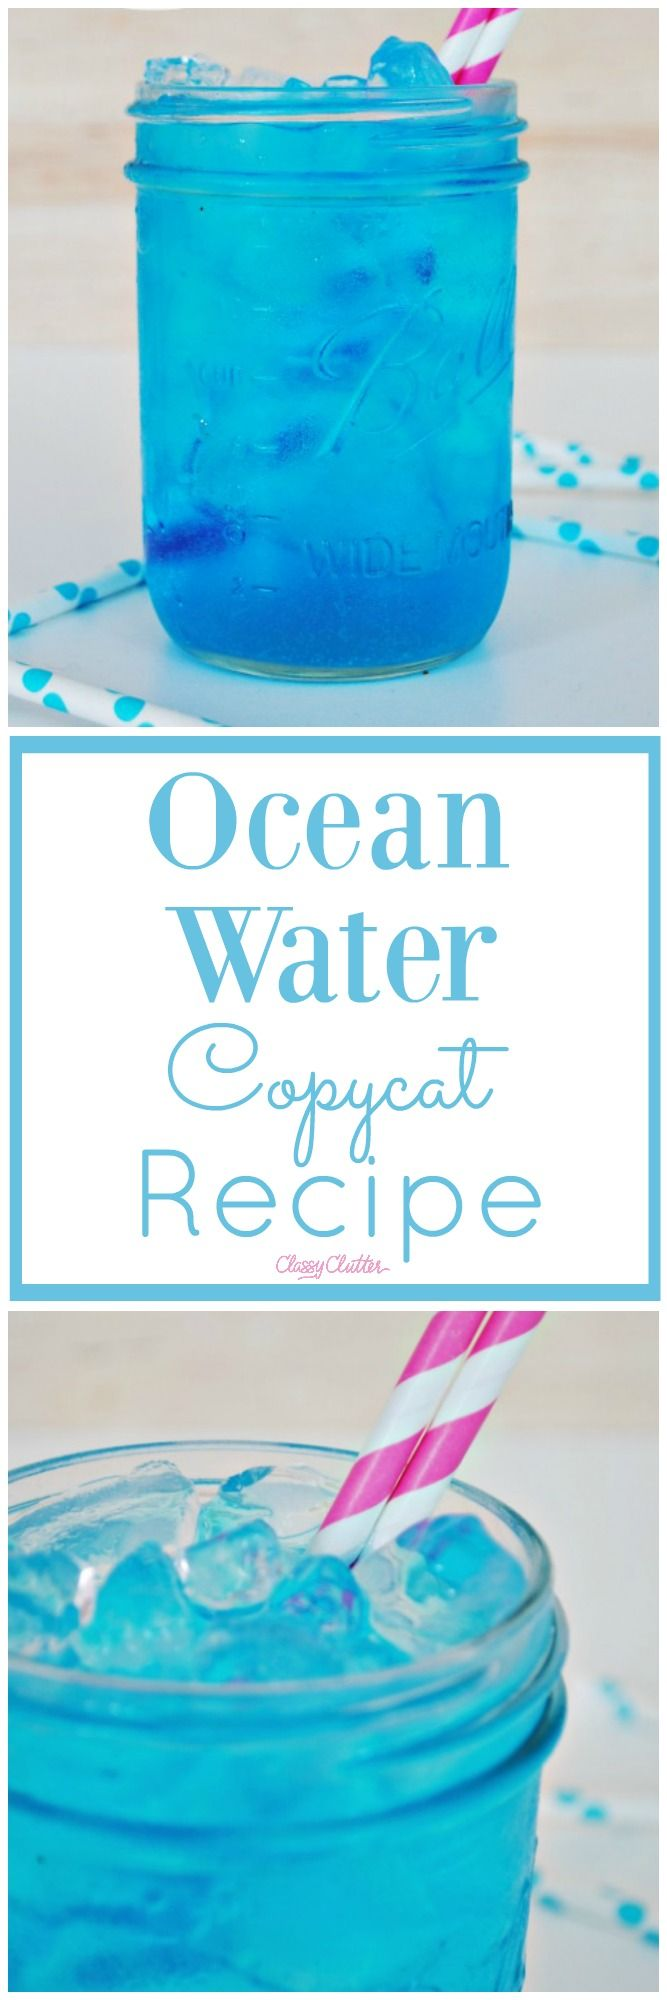 Sonic Ocean Water Copycat Recipe - This is so yummy!!! Click for the recipe